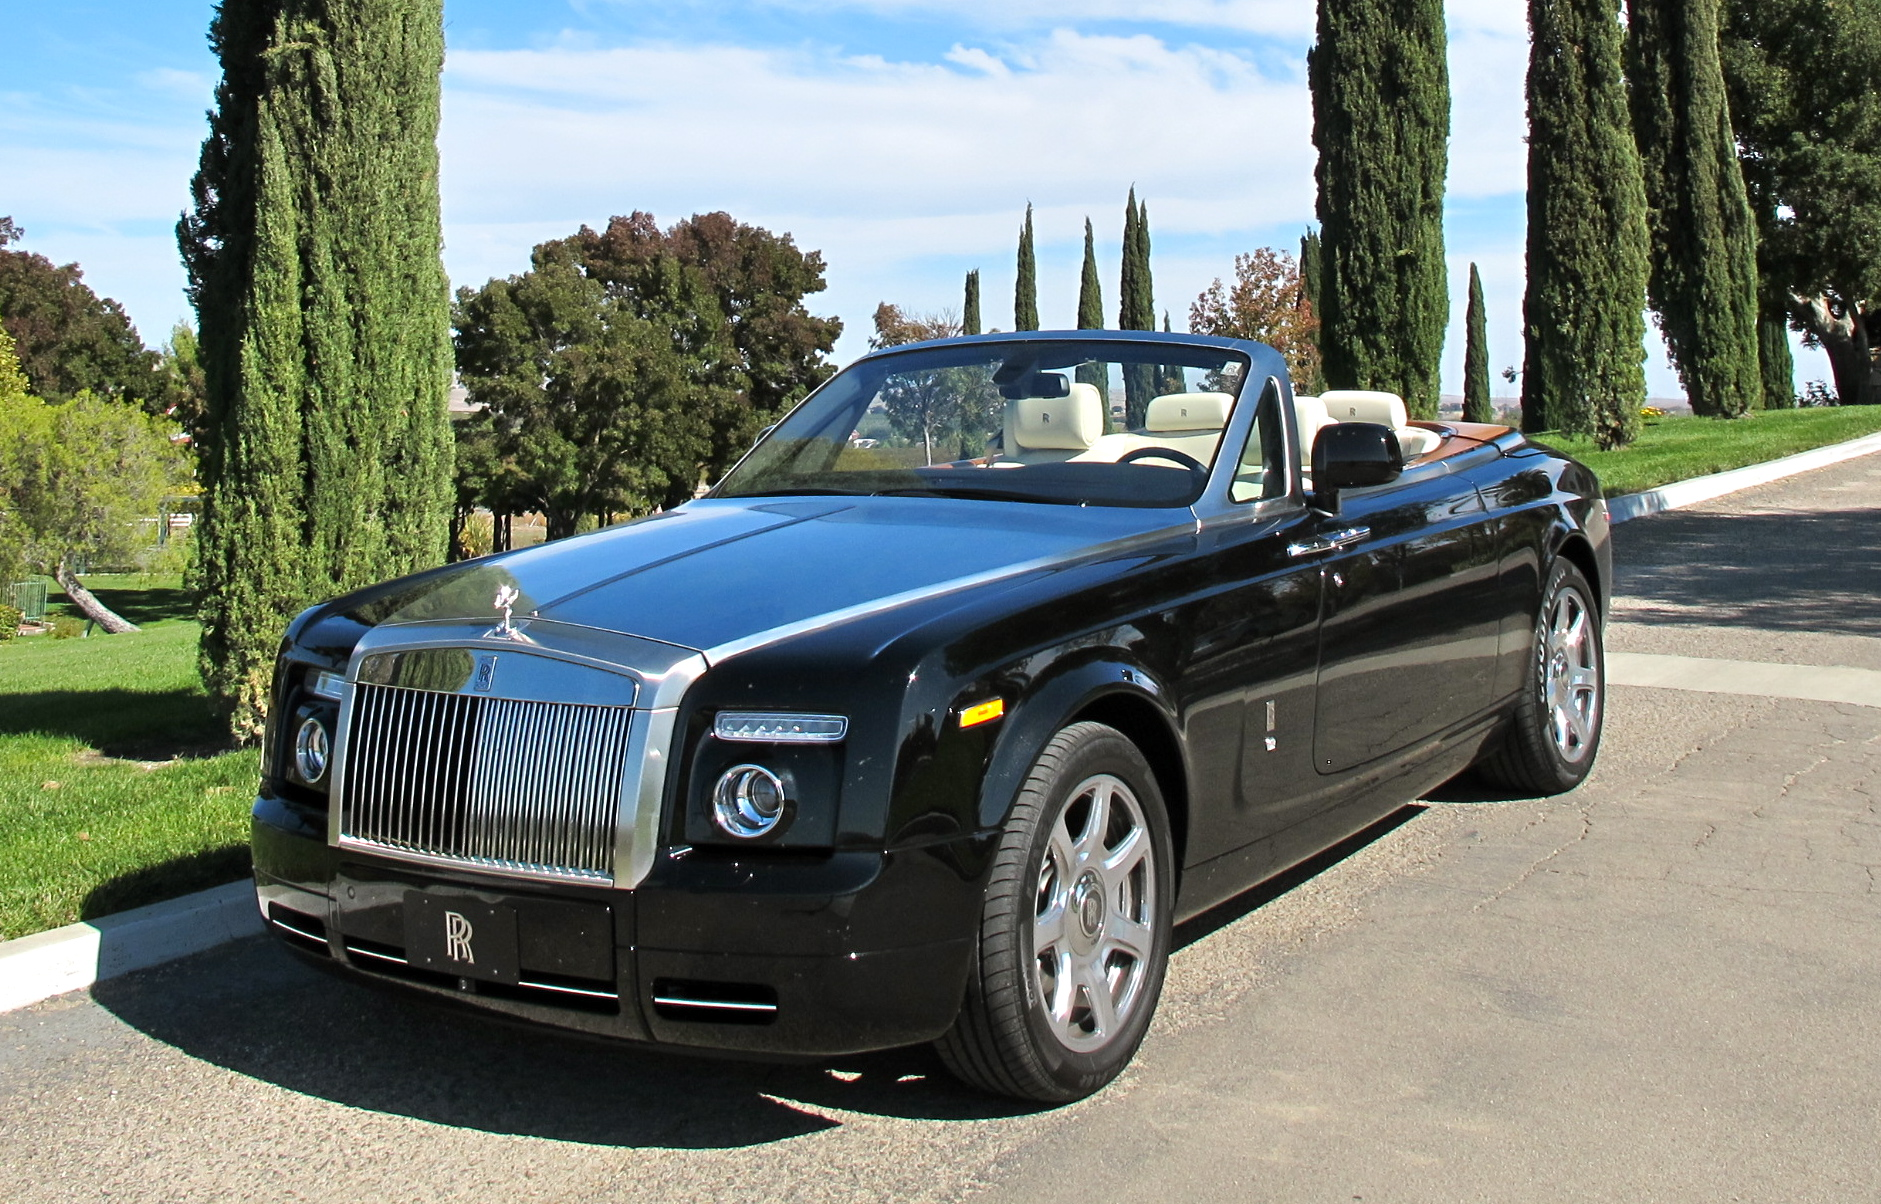 2011 Rolls Royce Phantom Drophead Coupe Information And